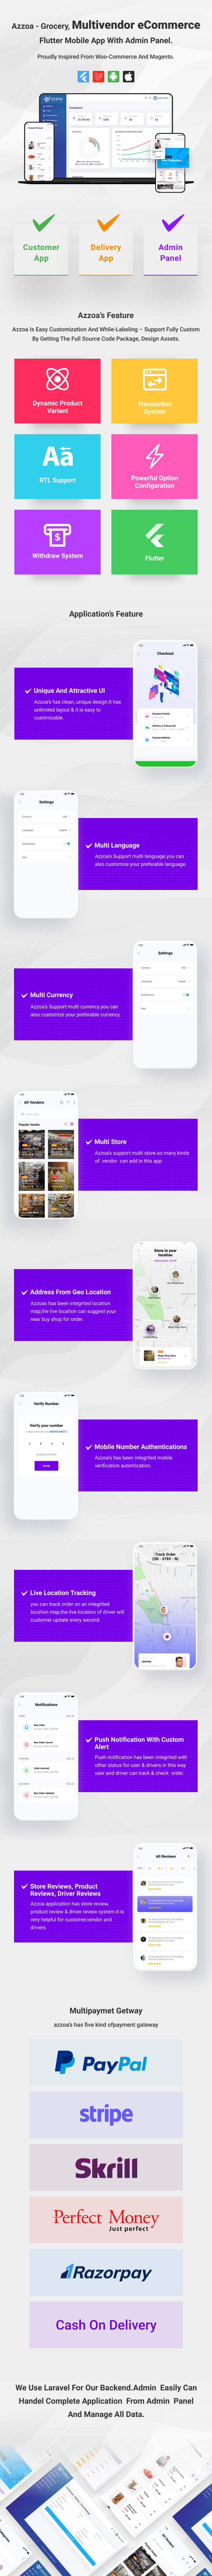 azzoa grocery, eCommerce mobile app